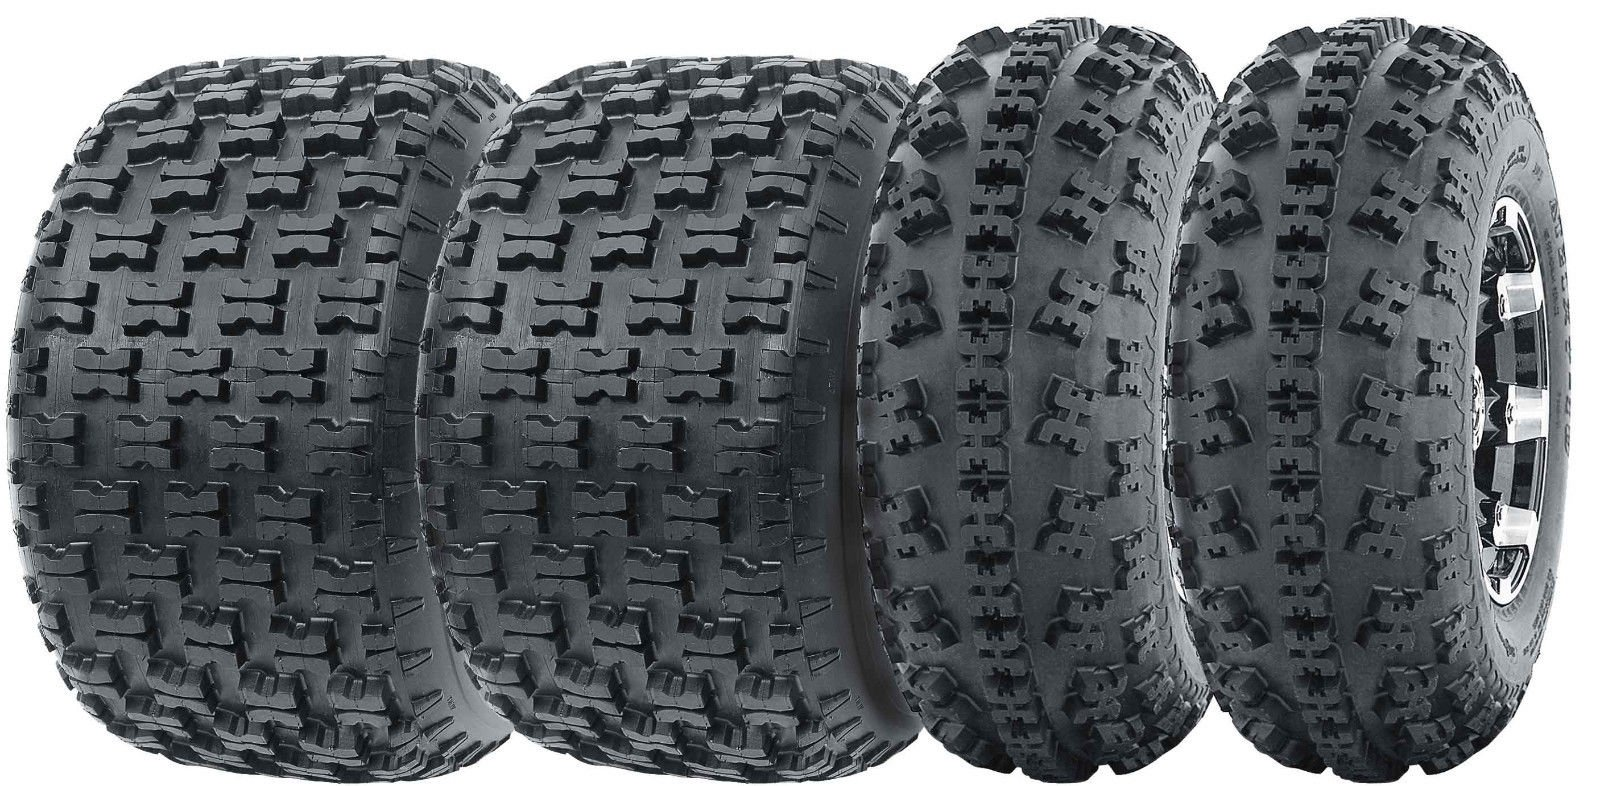 Set of 4 WANDA Sport ATV Tires AT 23x7-10 Front & 20x10-9 Rear /6PR